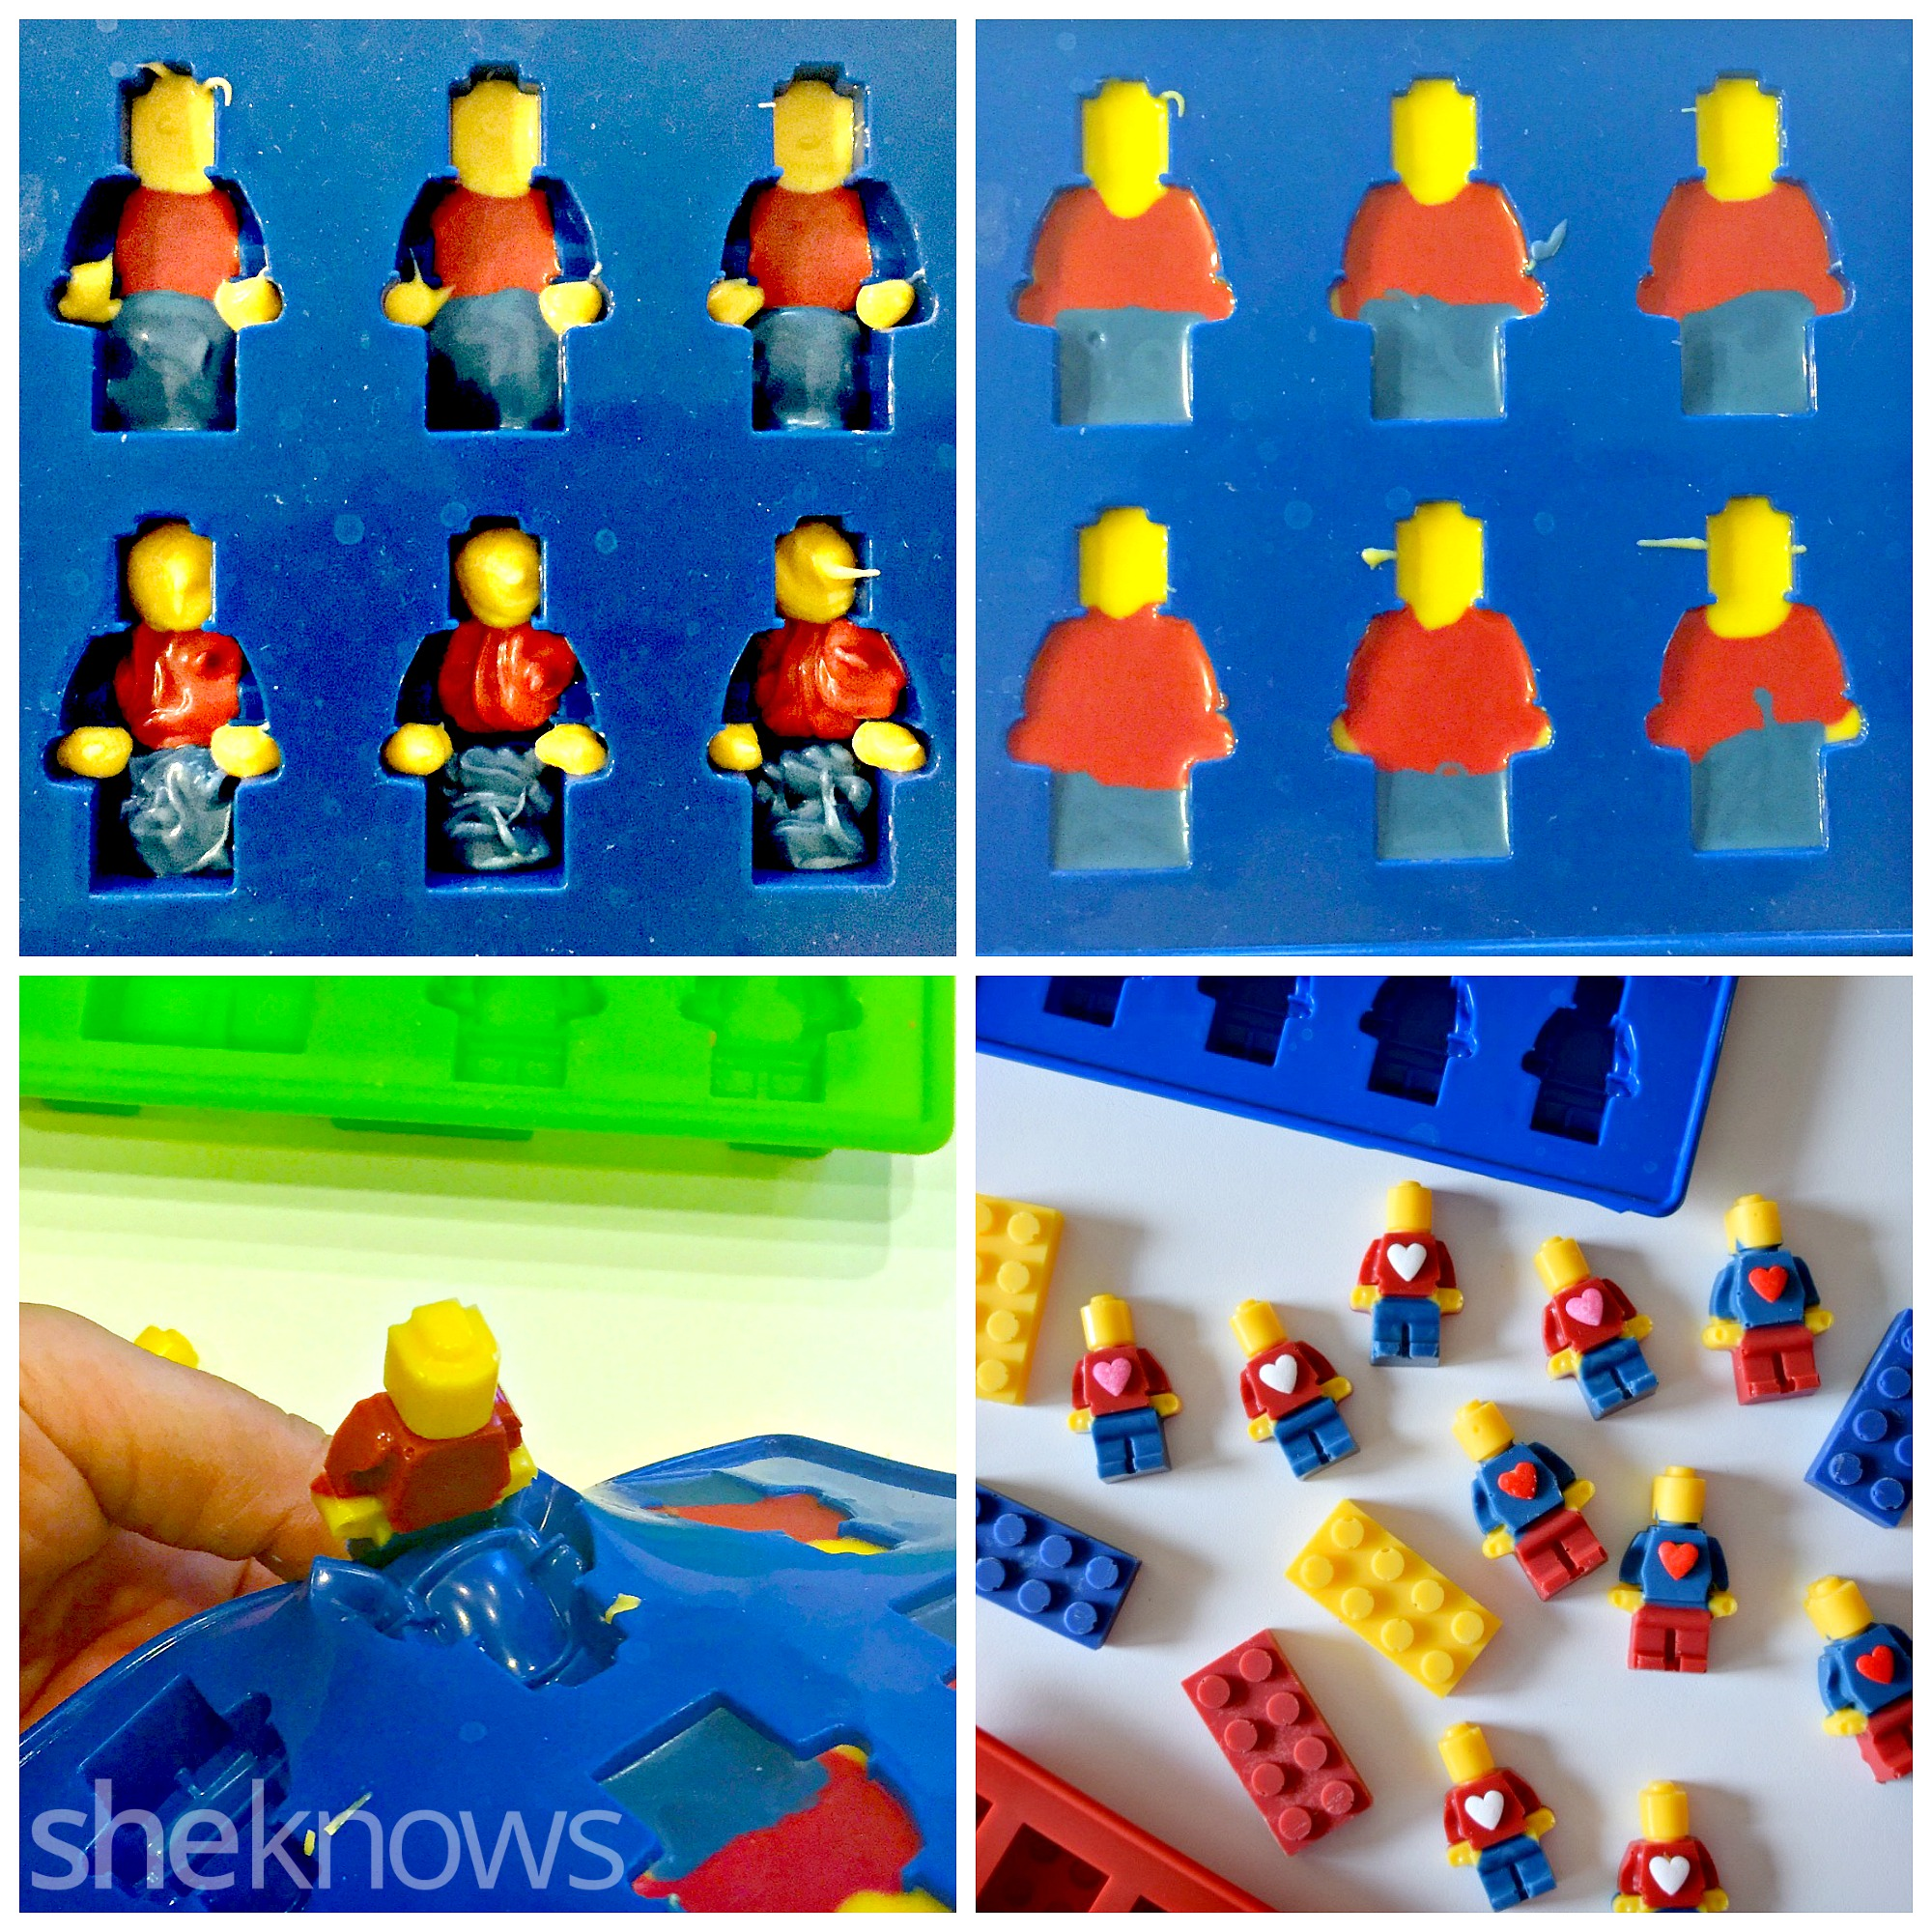 Lego Inspired Lego Inspired Valentine 39s Day Cards And Candies For Your